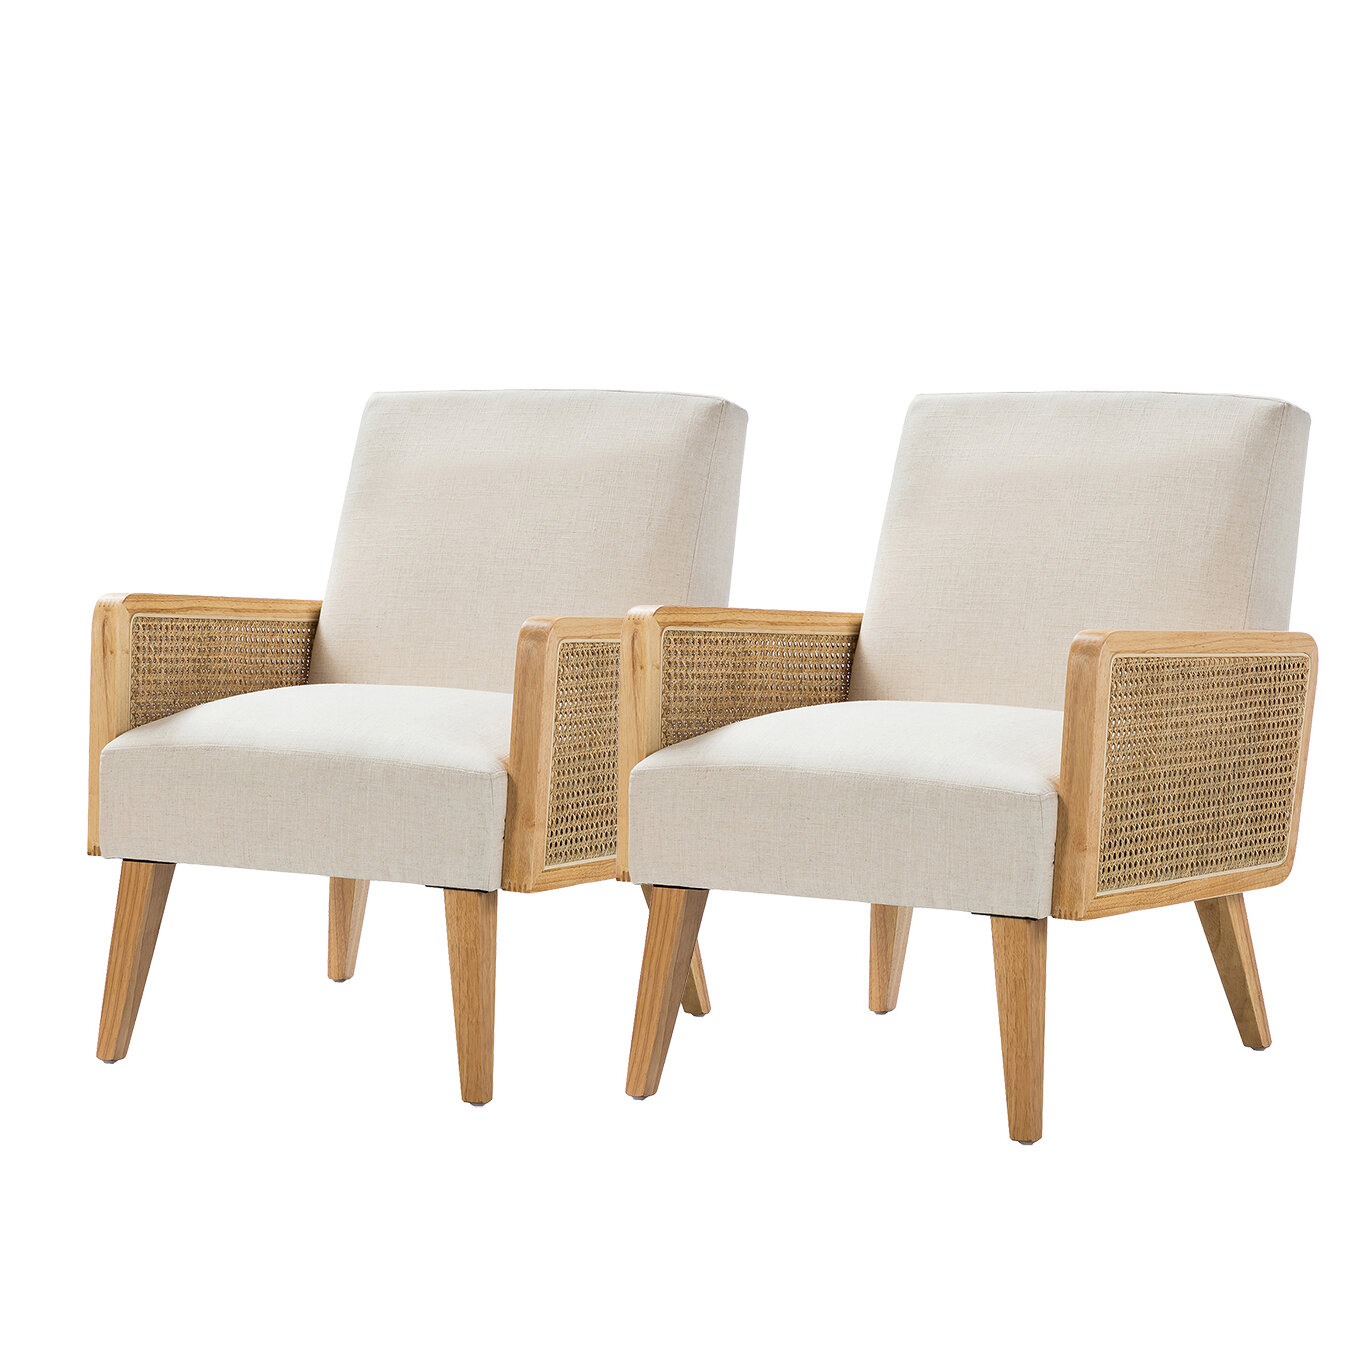 Arm Modern & Contemporary Accent Chairs You'Ll Love In 2021 Within Dallin Arm Chairs (View 6 of 15)